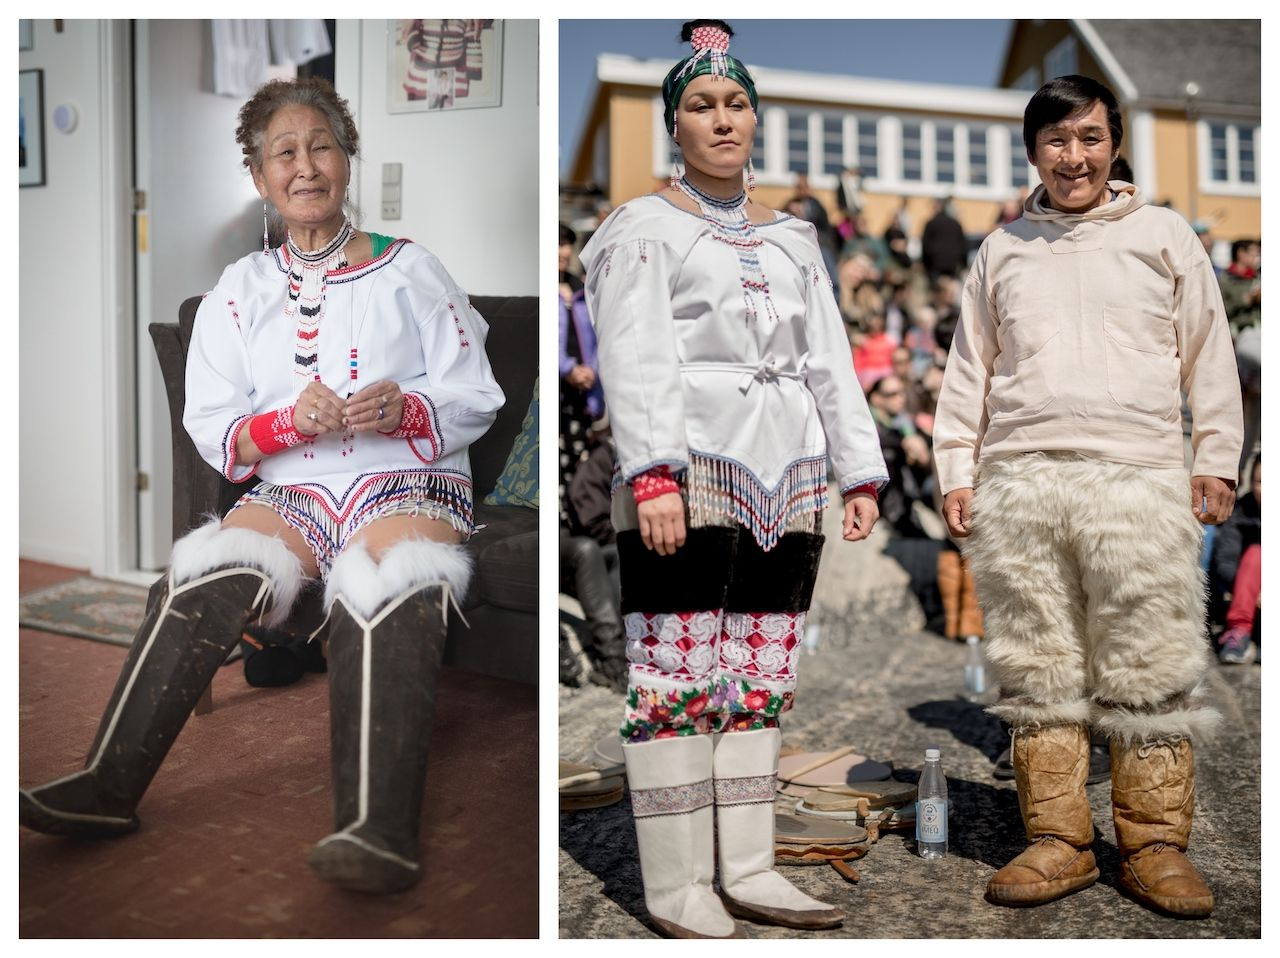 Regionalism in the Greenland national dress